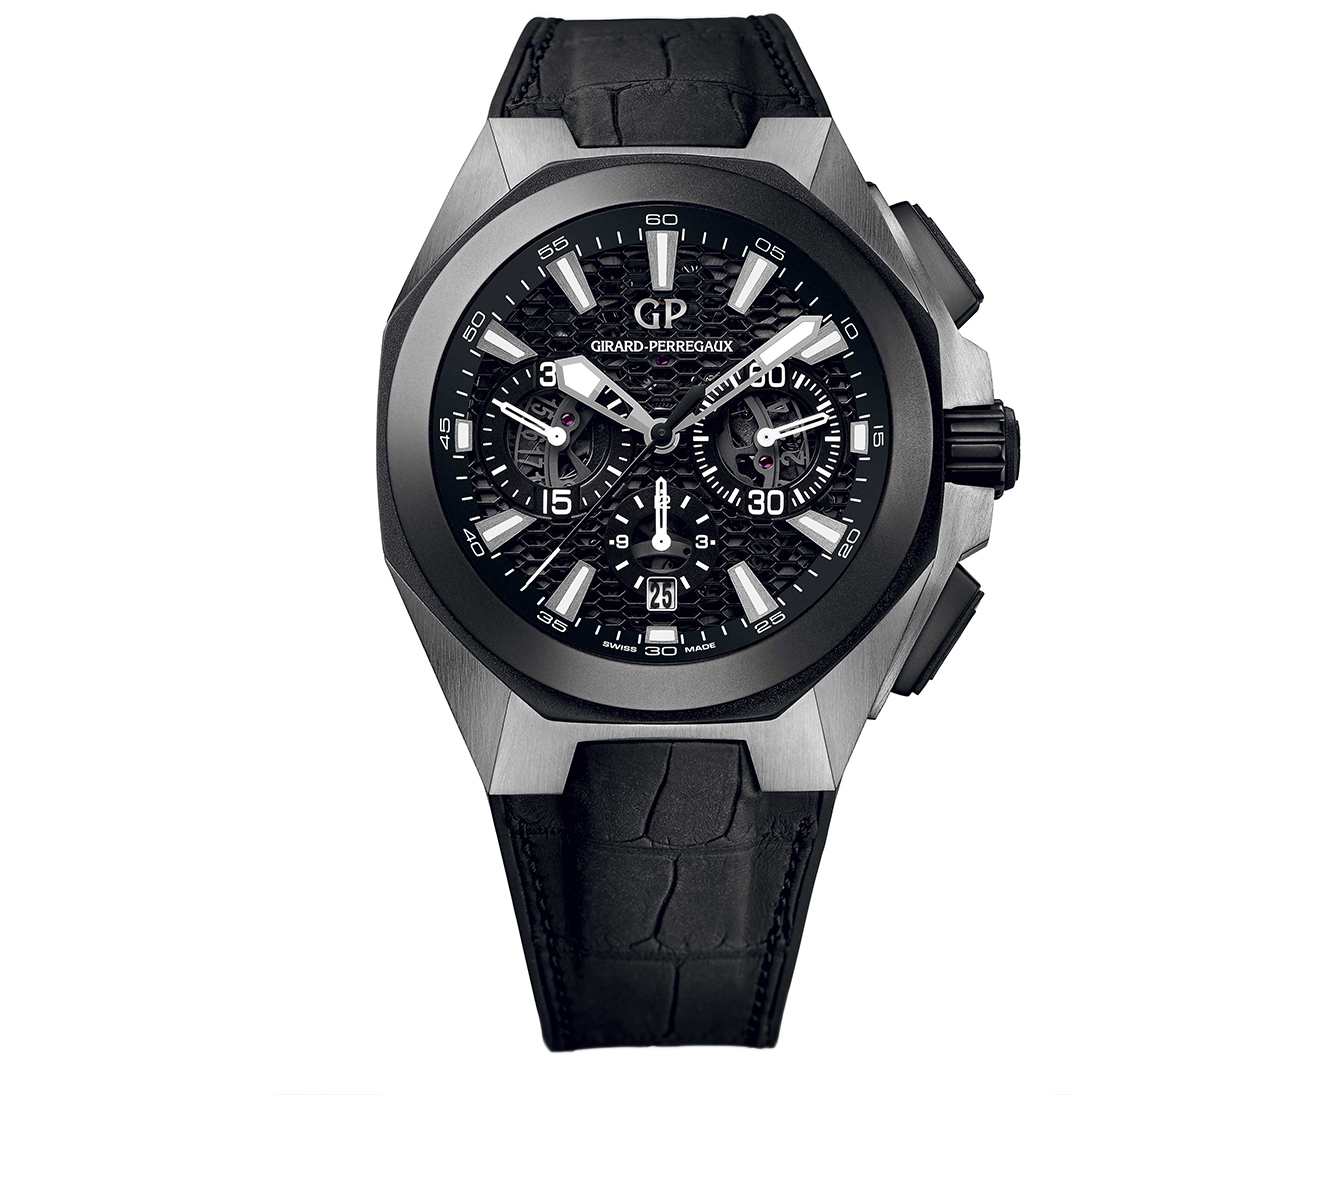 Часы Titanium Ceramic Black Chrono GIRARD-PERREGAUX Sea Hawk 49971-37-631-BB6A - фото 1 – Mercury